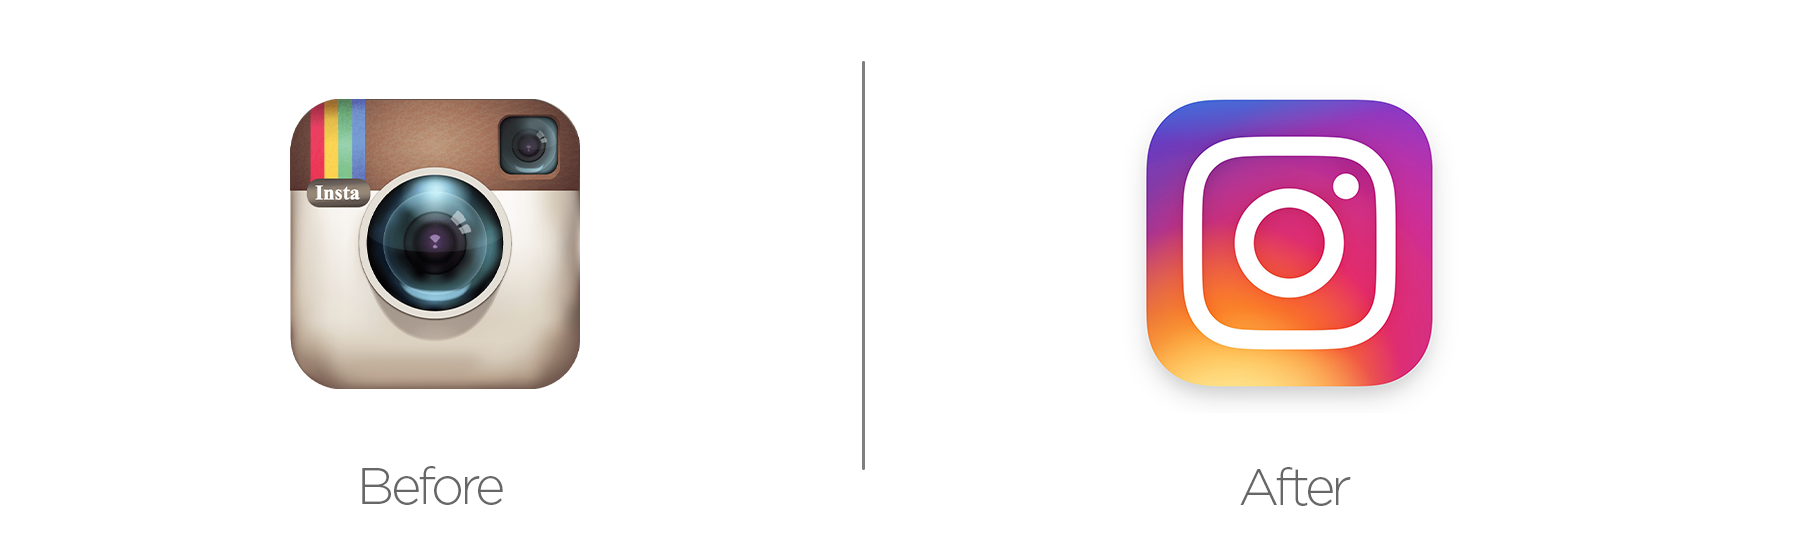 Instagram rebrand before and after